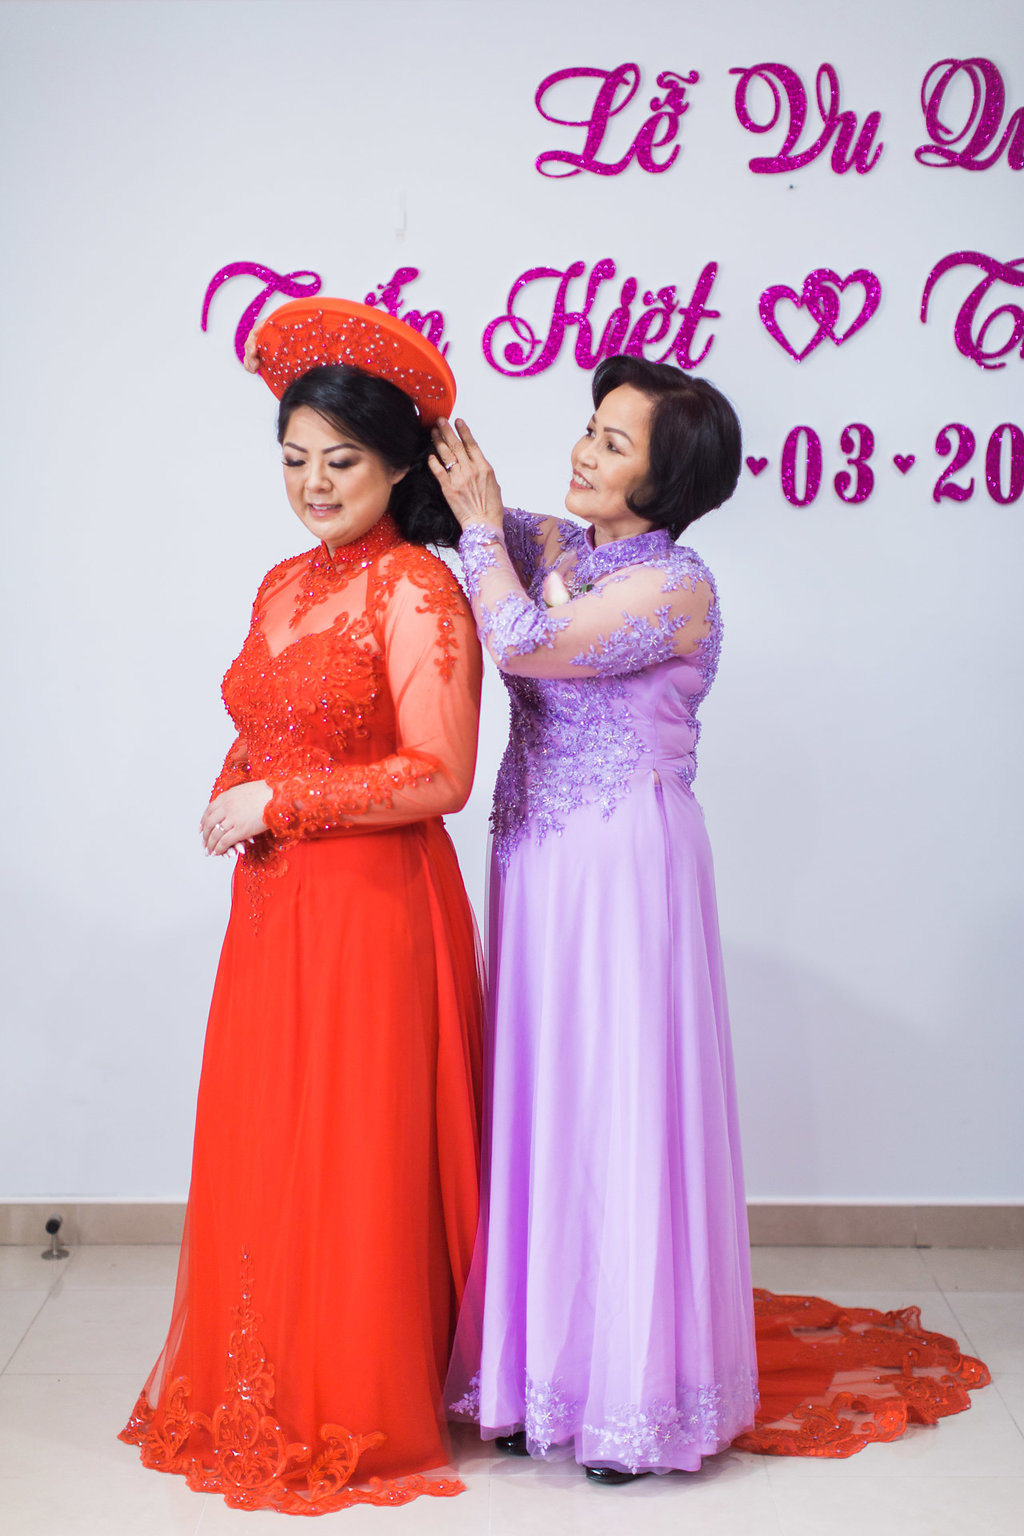 Linh's Wedding Ao Dai Photo 12